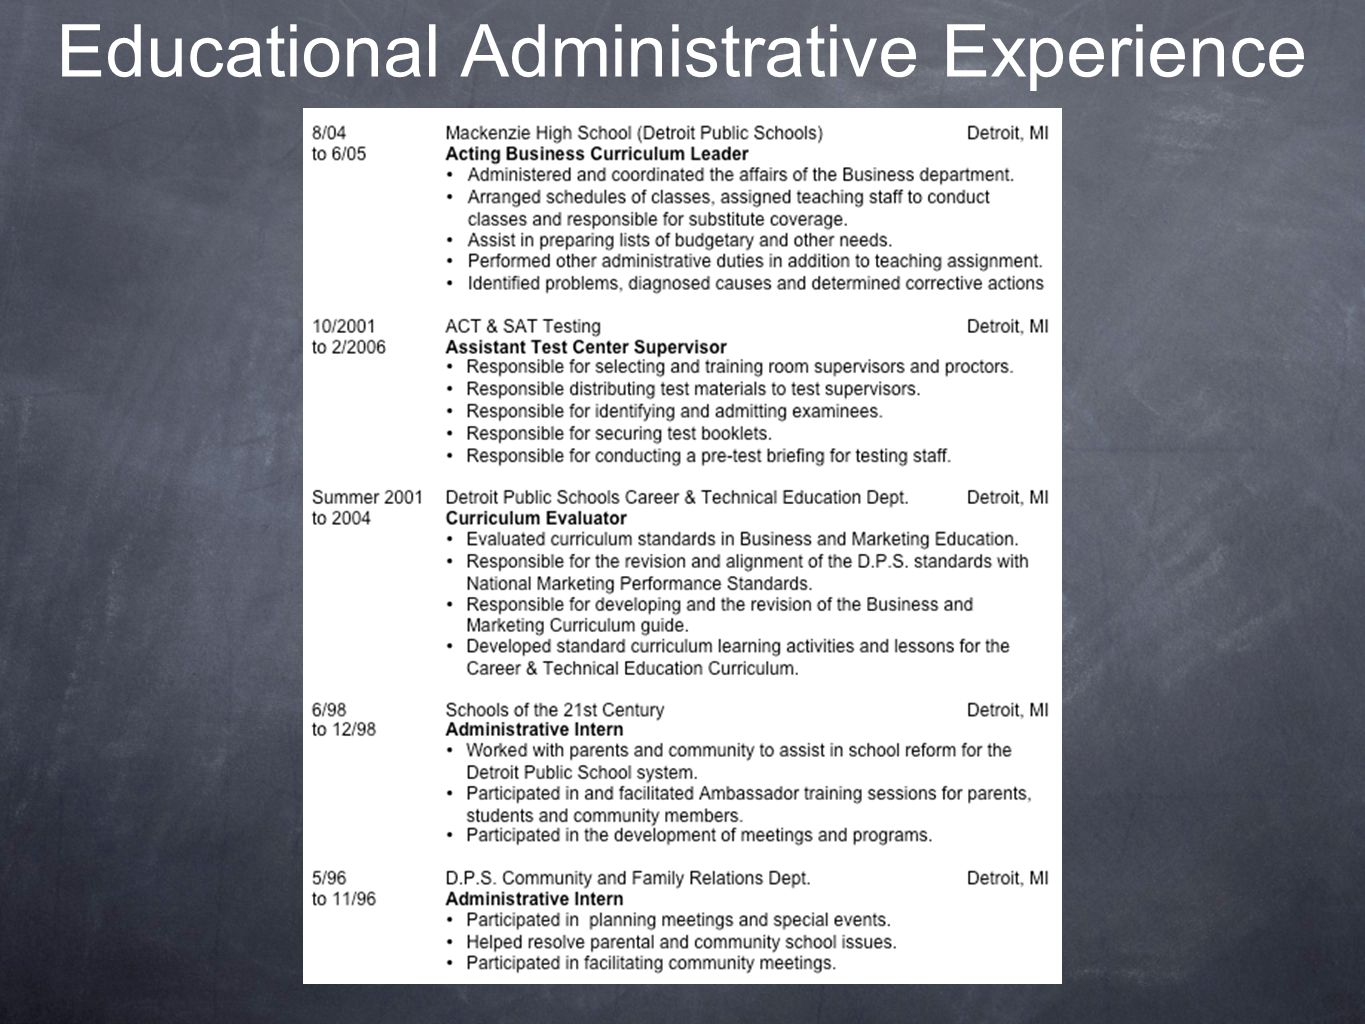 Educational Administrative Experience